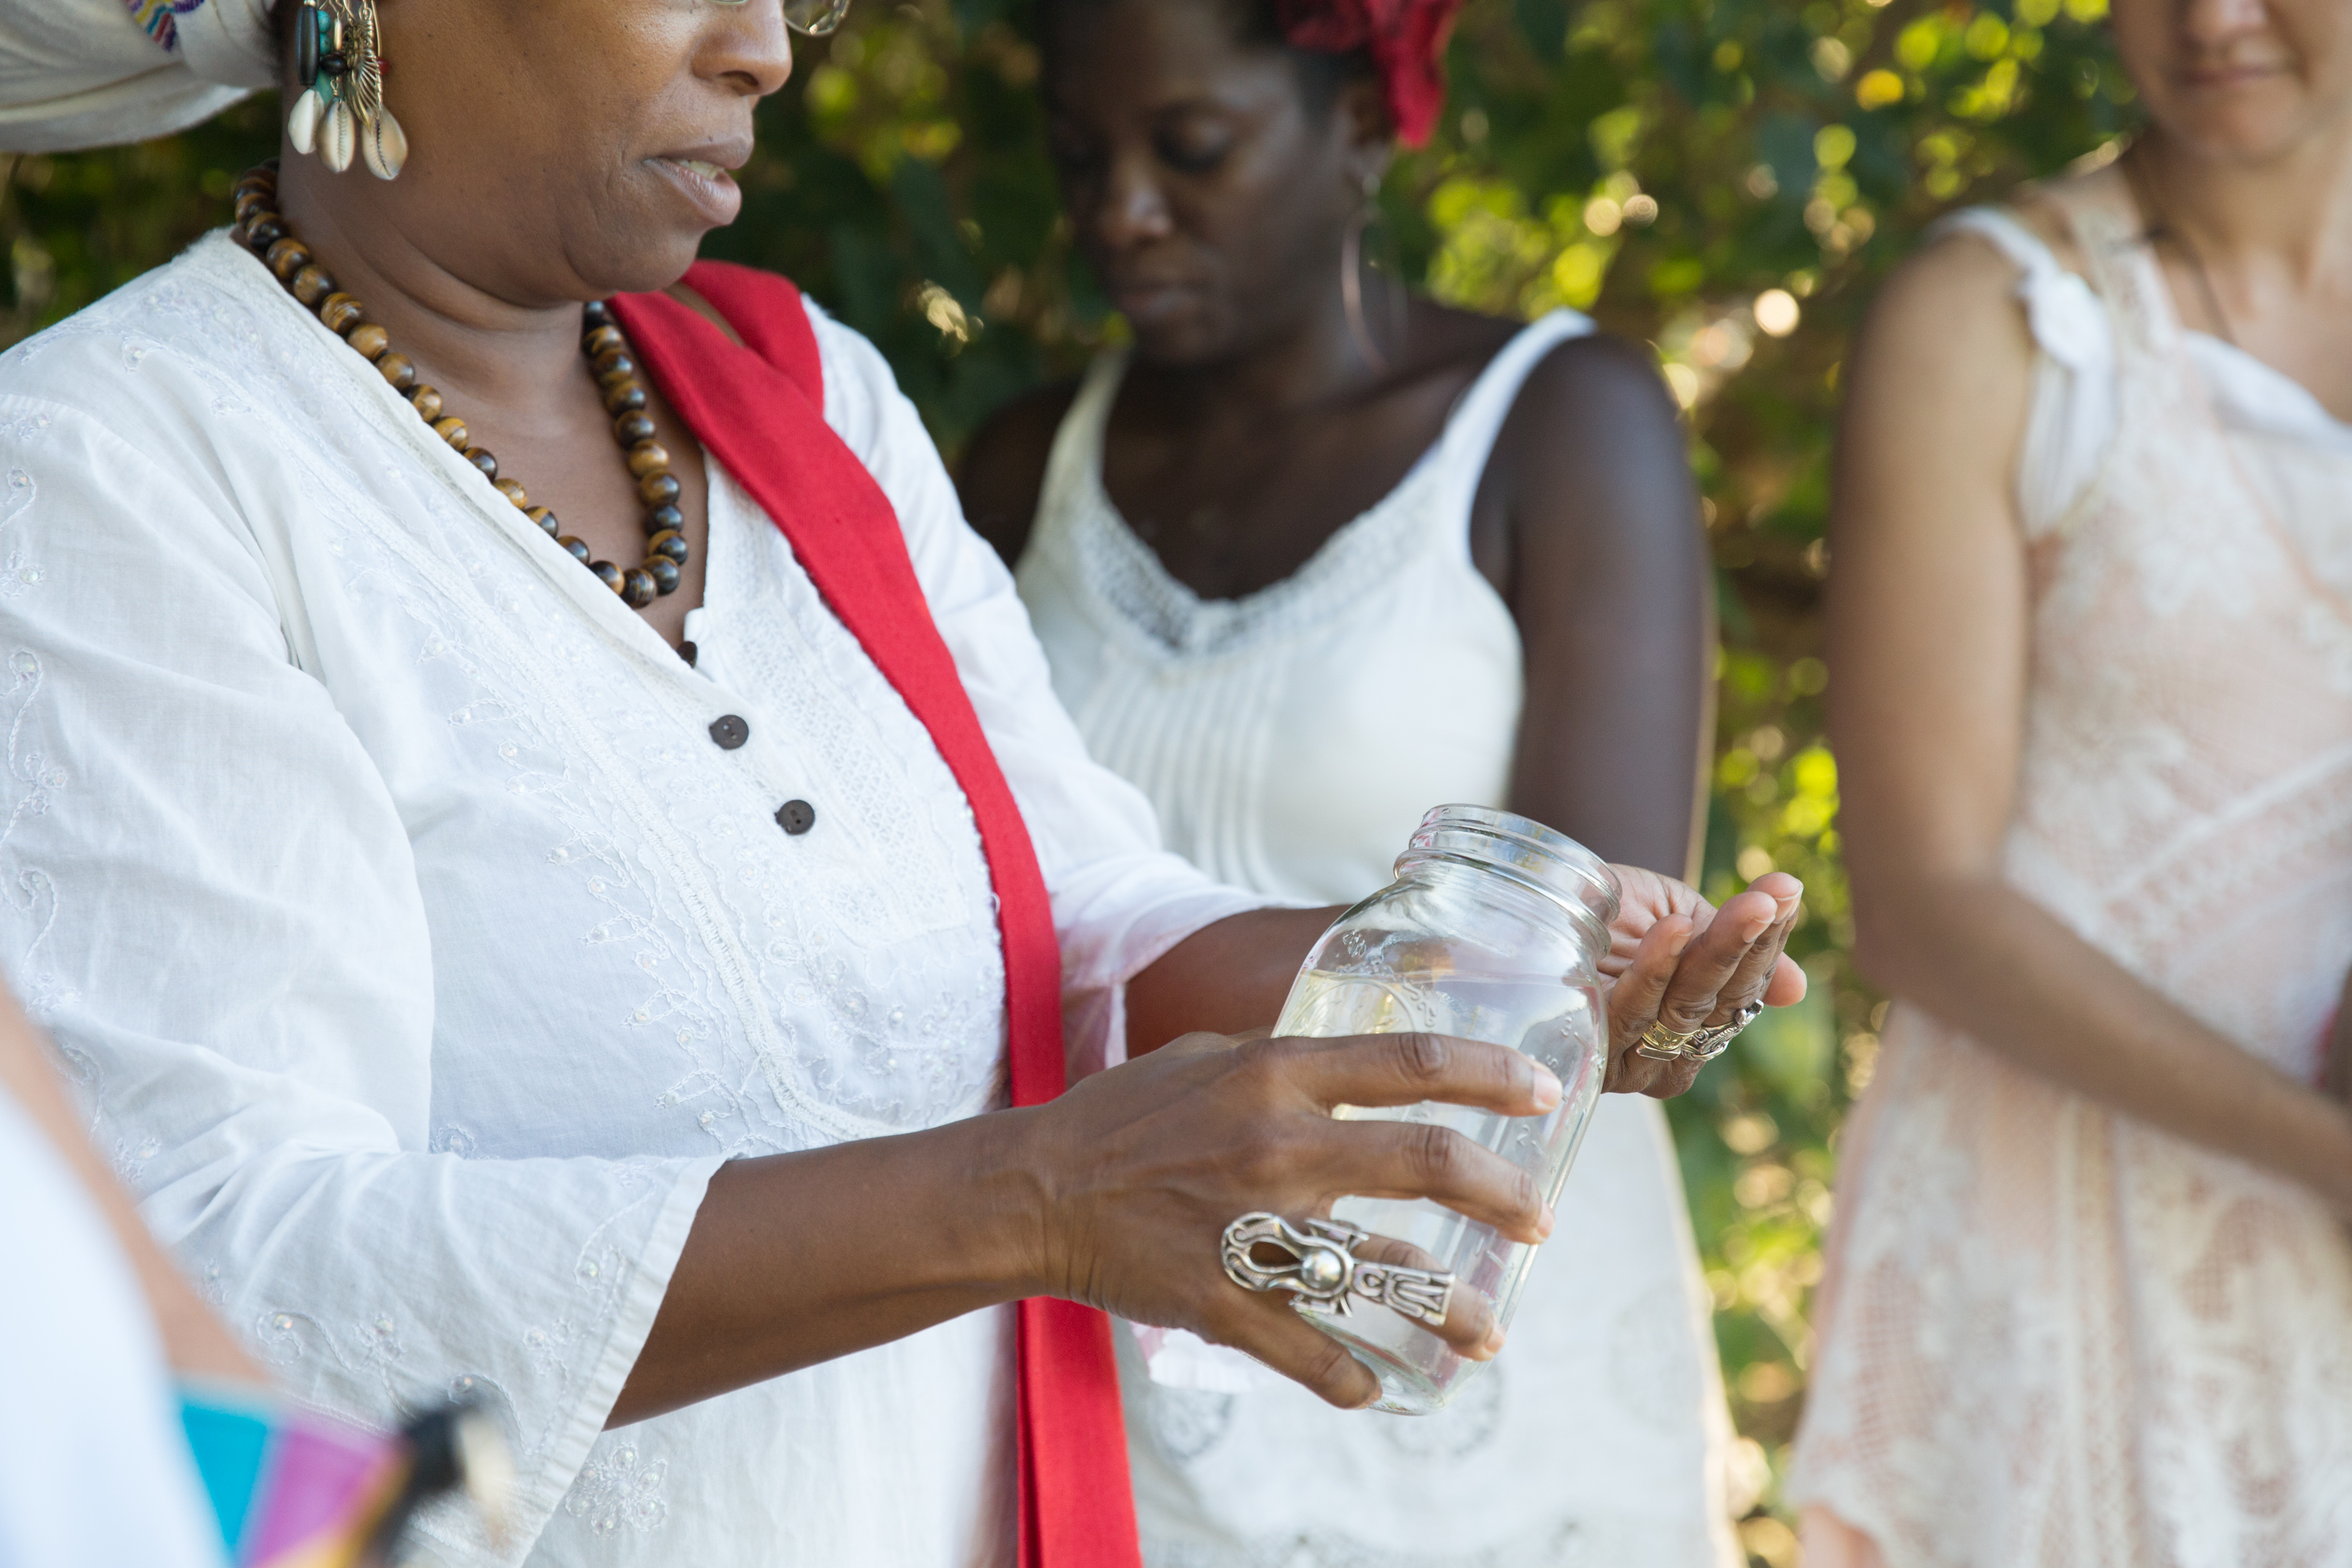 At the bayside in St. Croix, we passed a jar of sea water among us, each offering a wish or hope or blessing back to the sea. Dr. Chenzira Davis-Kahina pours water on her hands as part of her ritual. Fishtrap collaborator Oceana James and Paloma McGregor stand in the background.